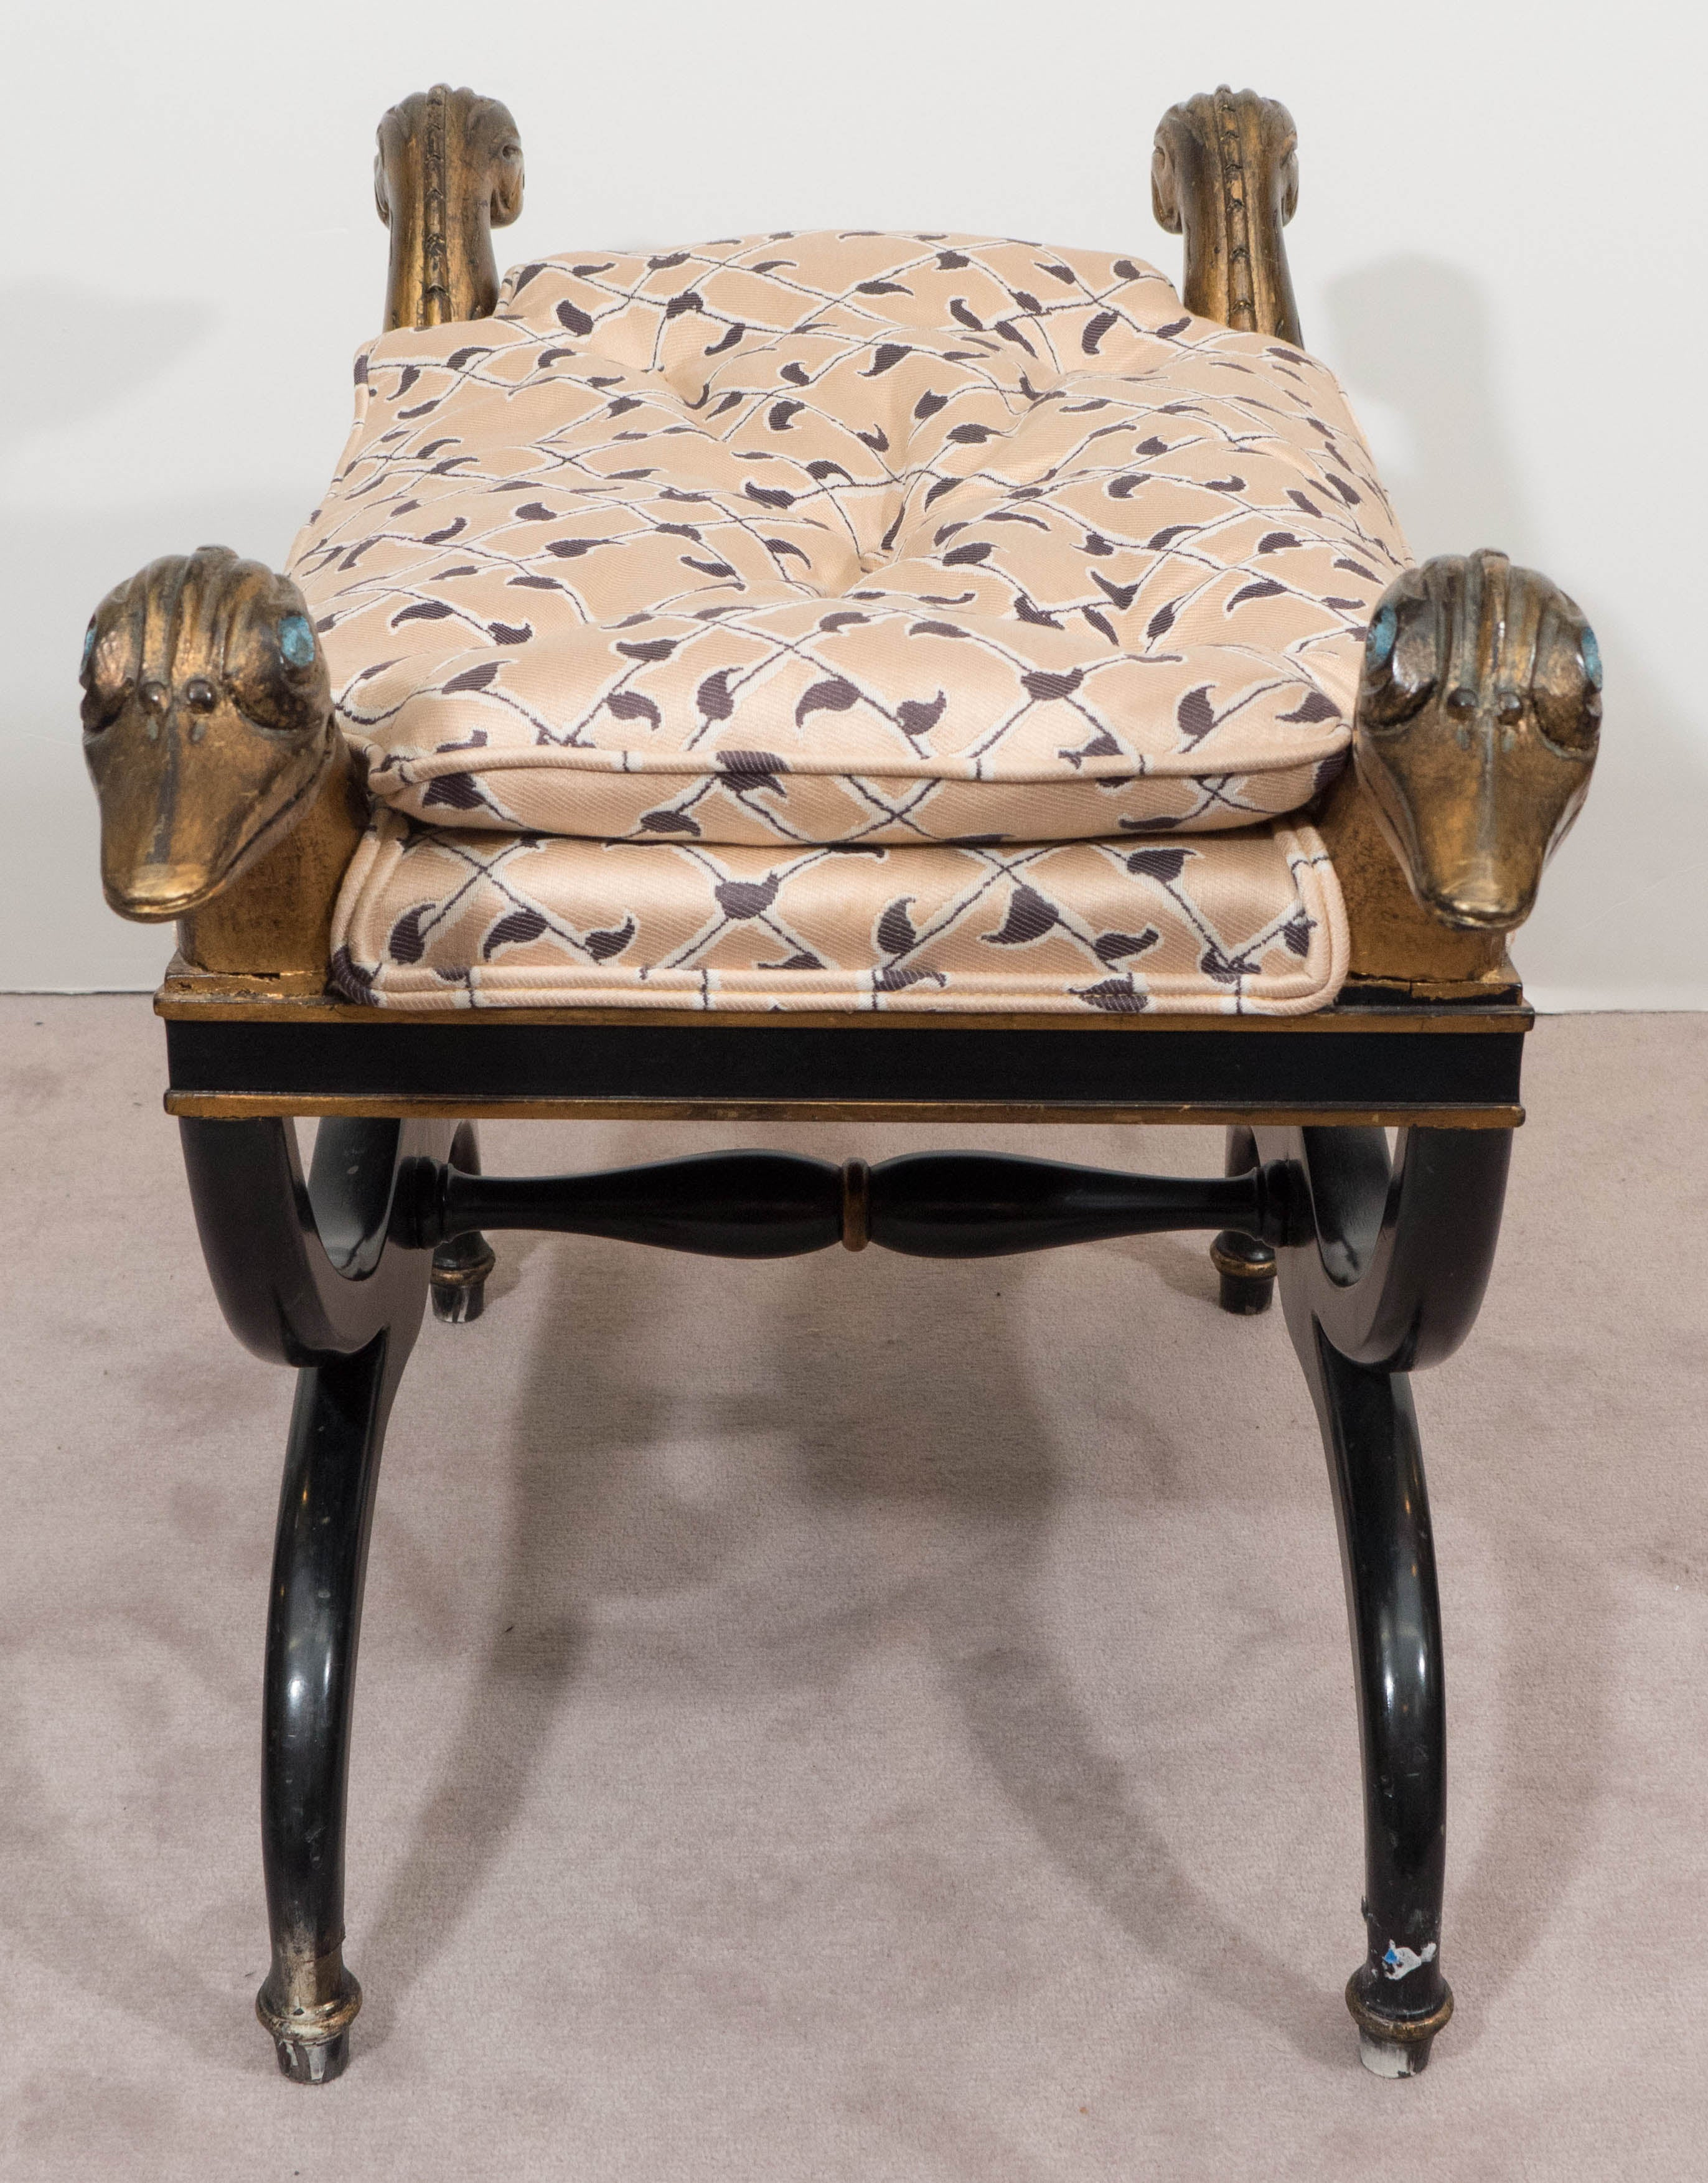 furniture designs optronk bench home design leopard ideas luxury bedroom bed nice royal